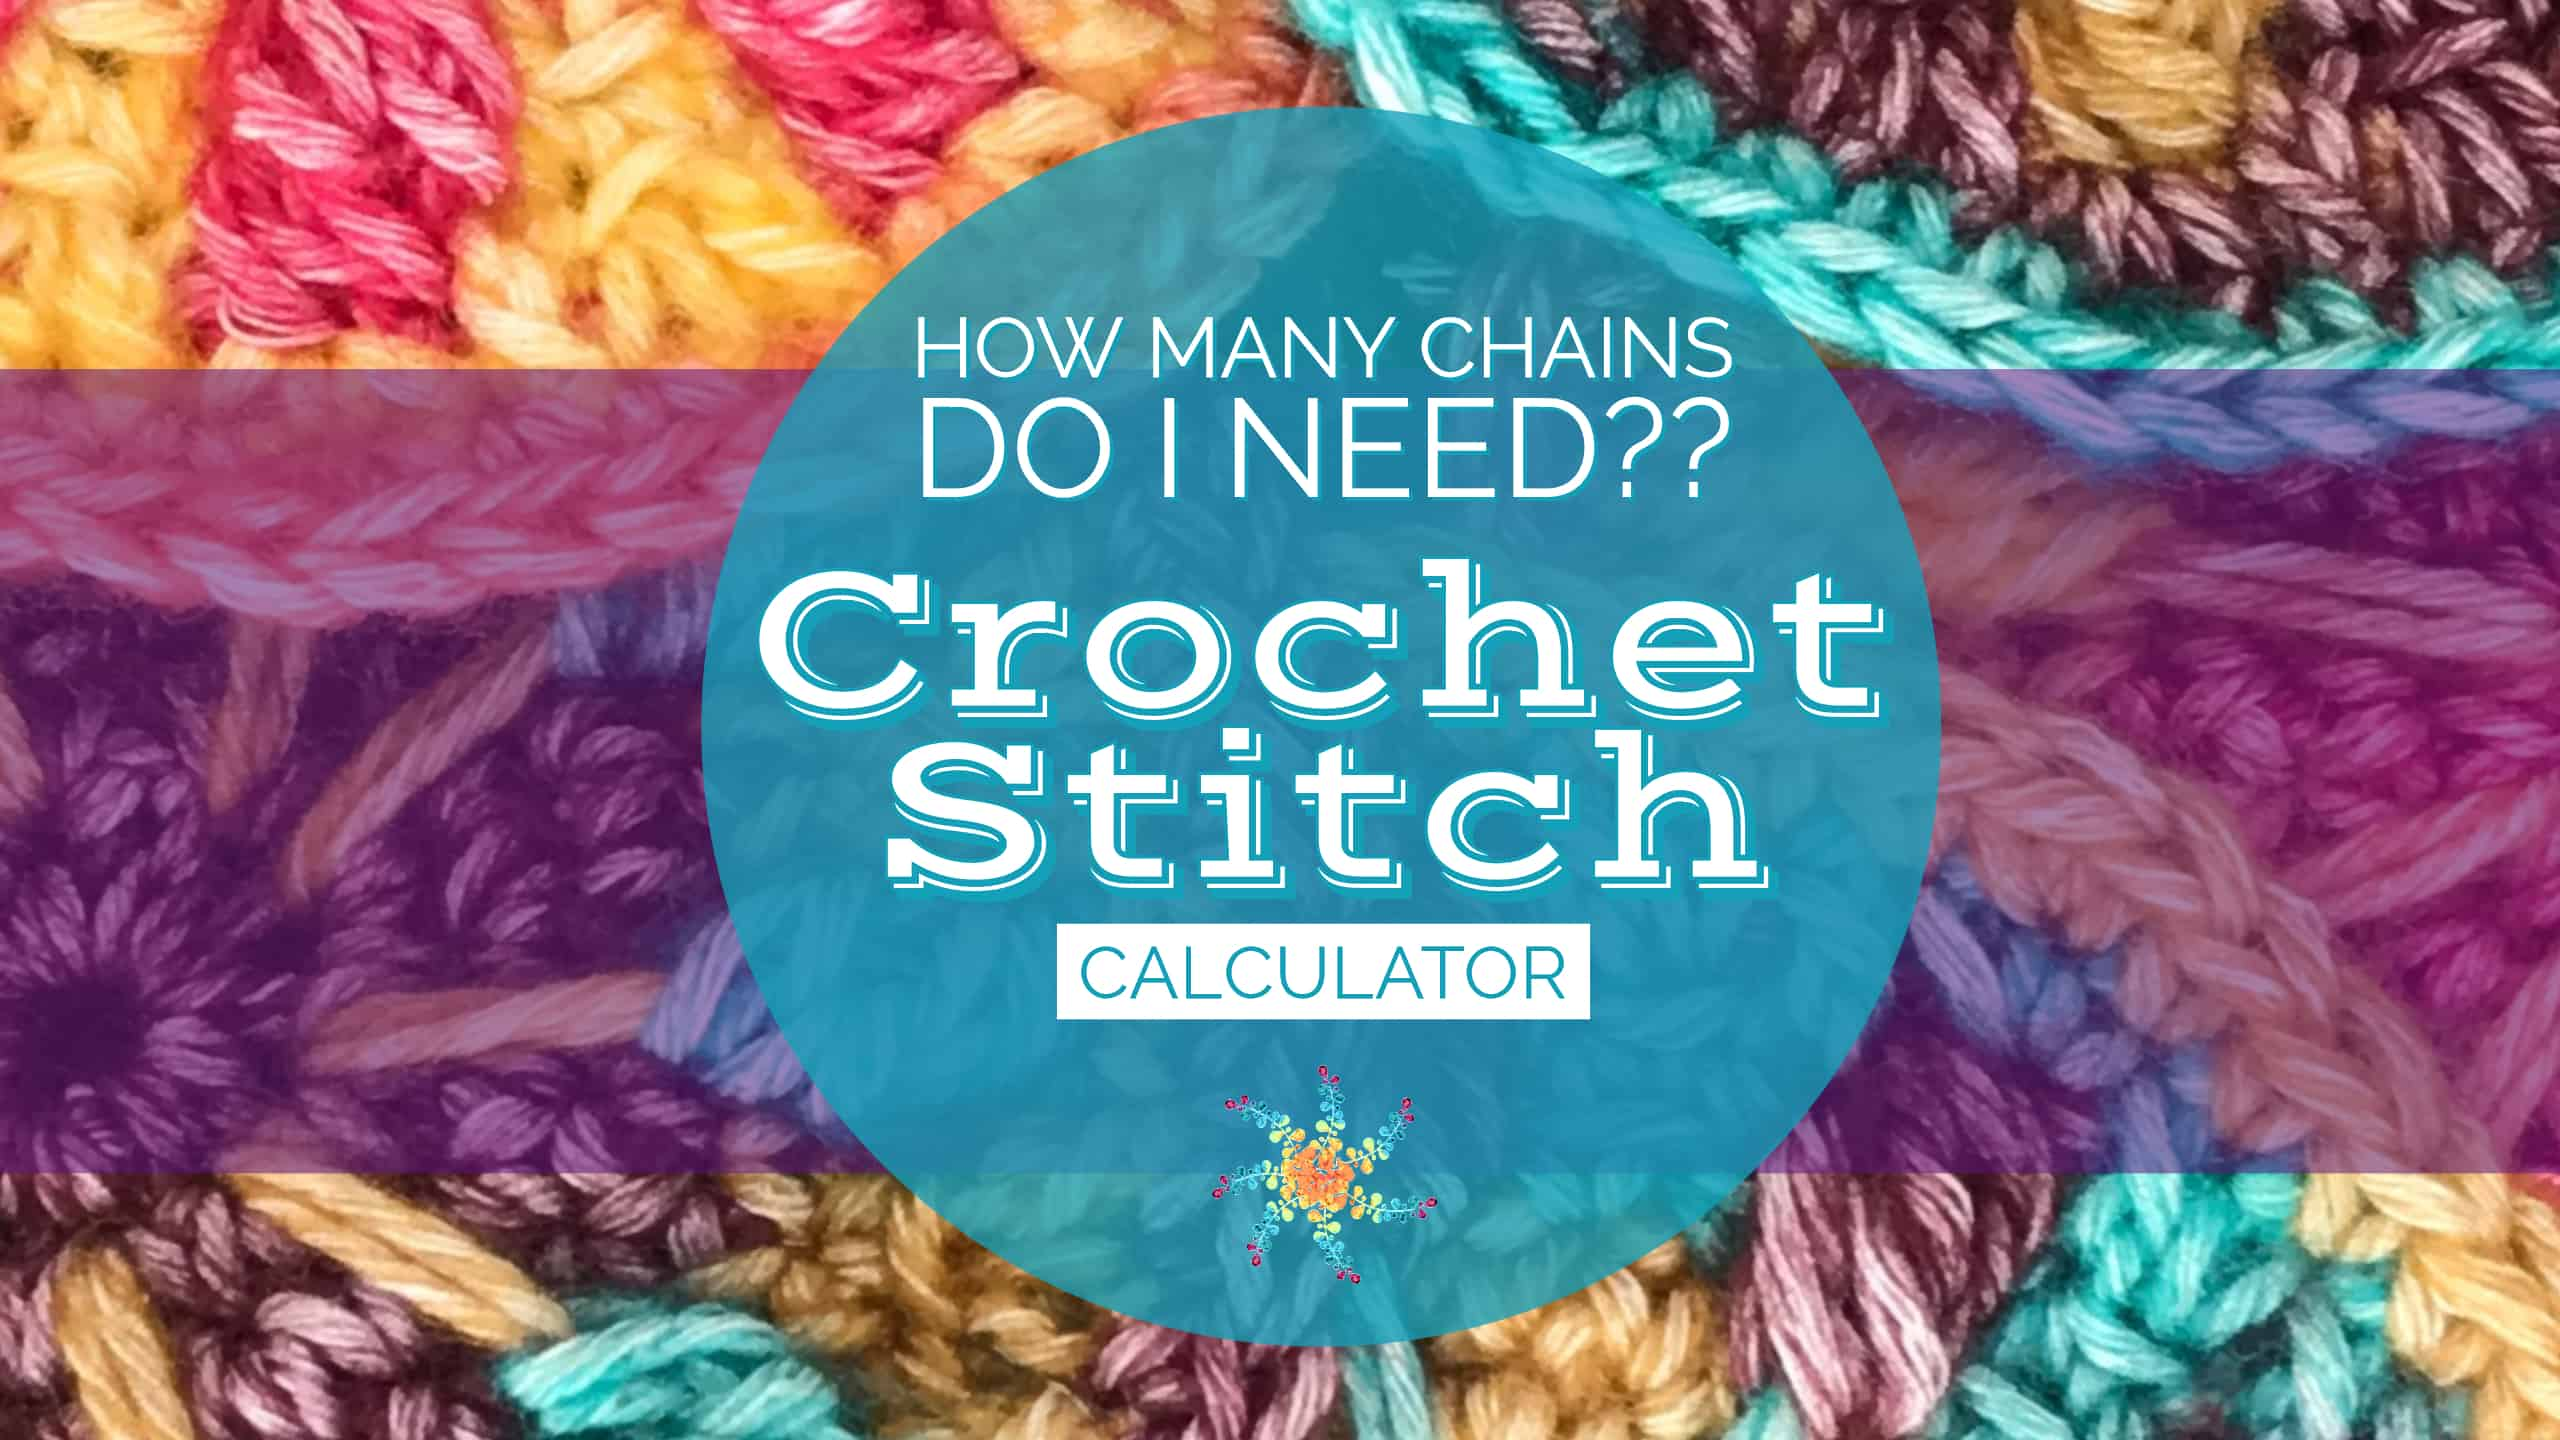 Crochet Stitch Calculator graphic, how many chains do I need?